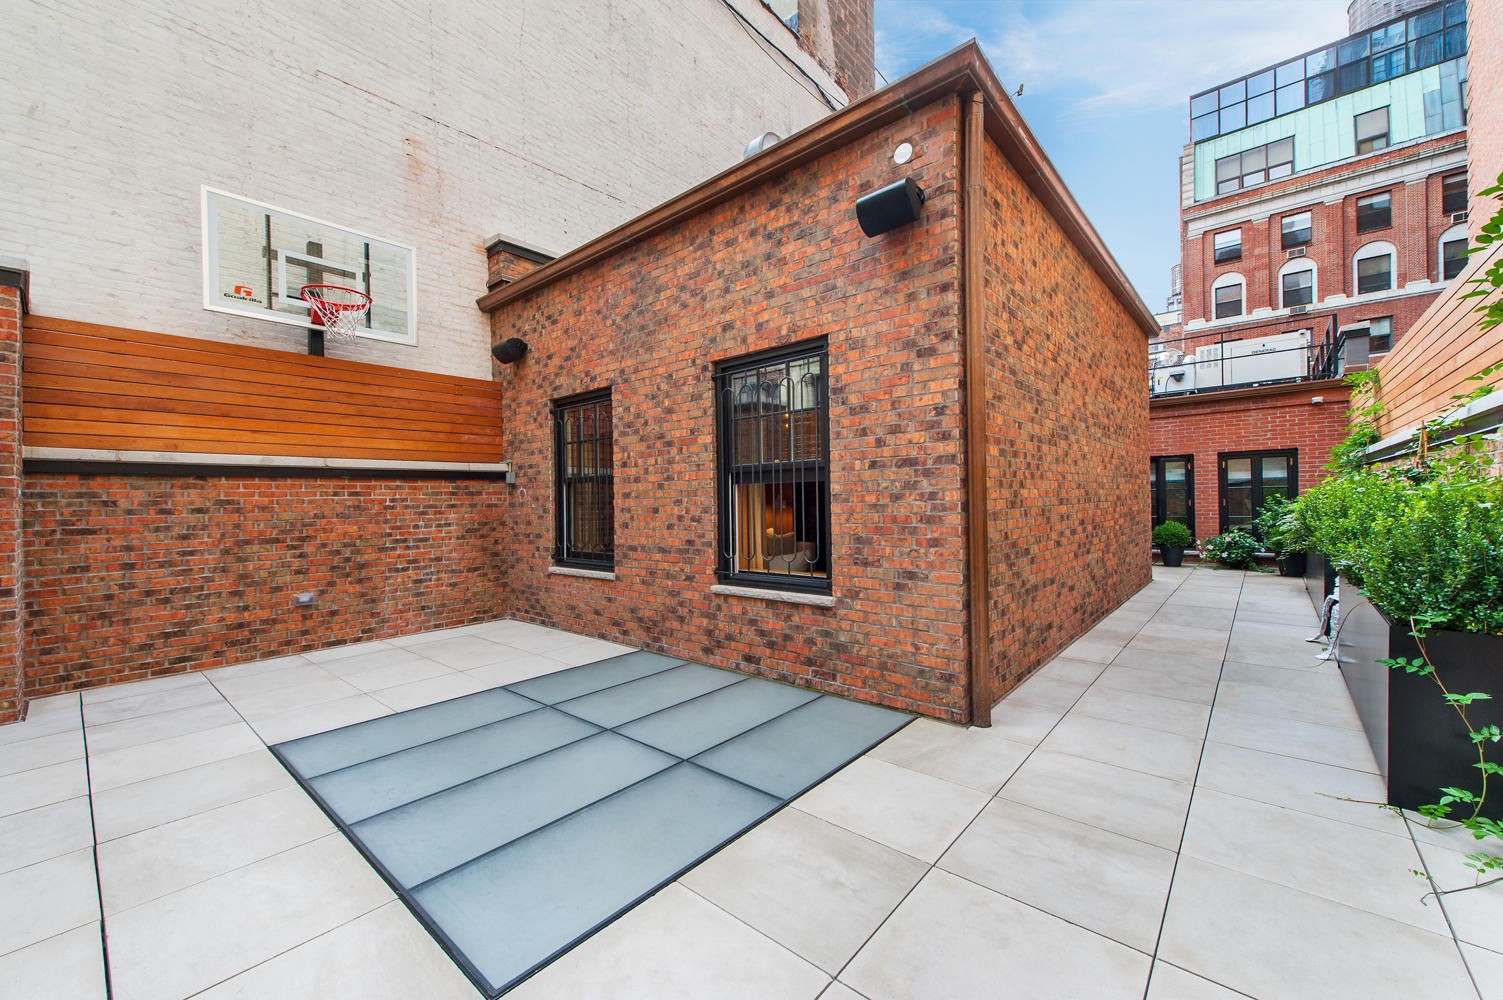 11-outdoor-basketball-court-real-estate